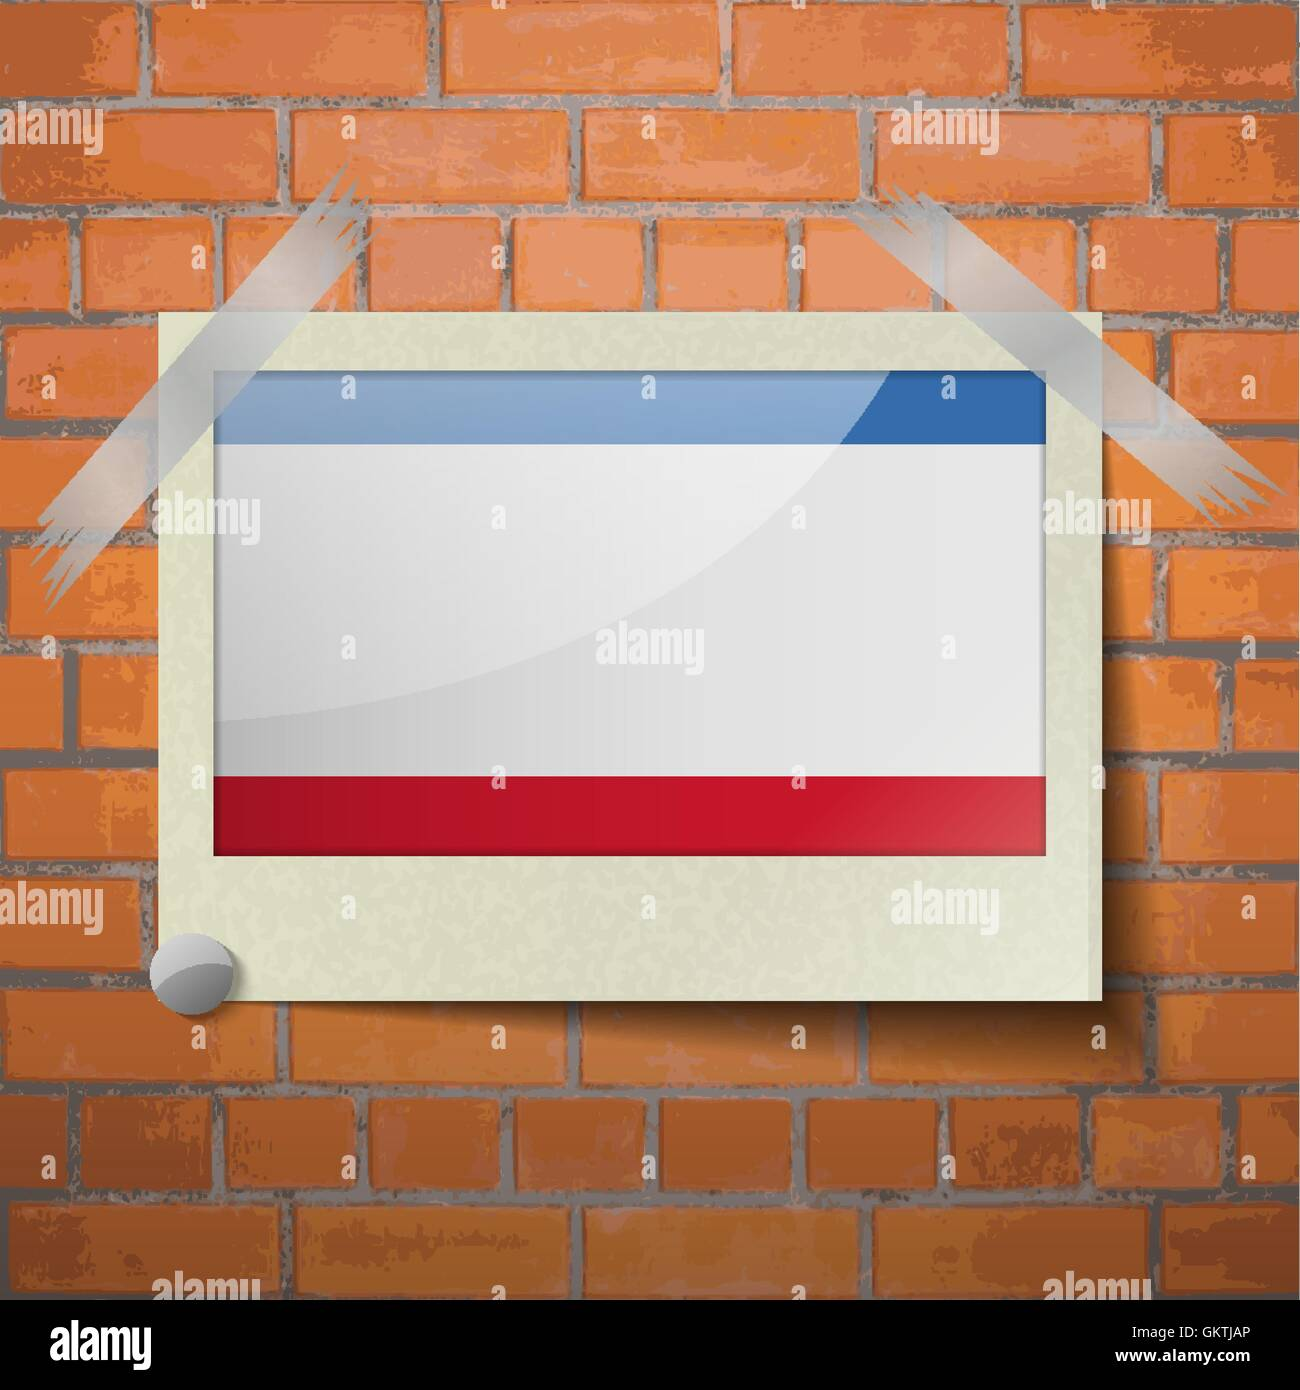 Flags Crimea scotch taped to a red brick wall - Stock Image